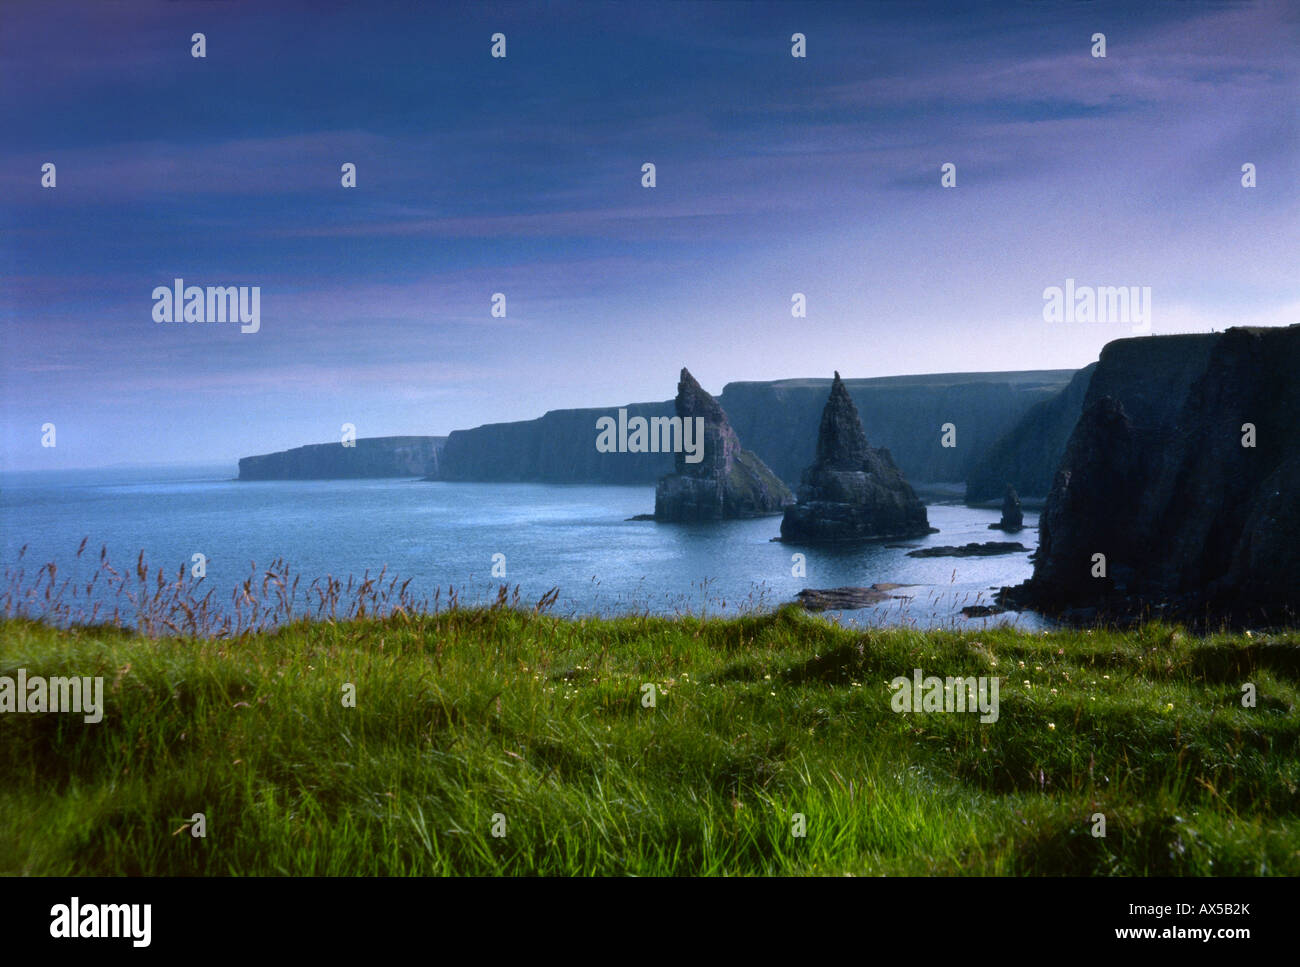 John O' Groats, Caithness, Wick Highland, Dunnet, Thurso, steep coastline in Scotland, UK, Europe - Stock Image